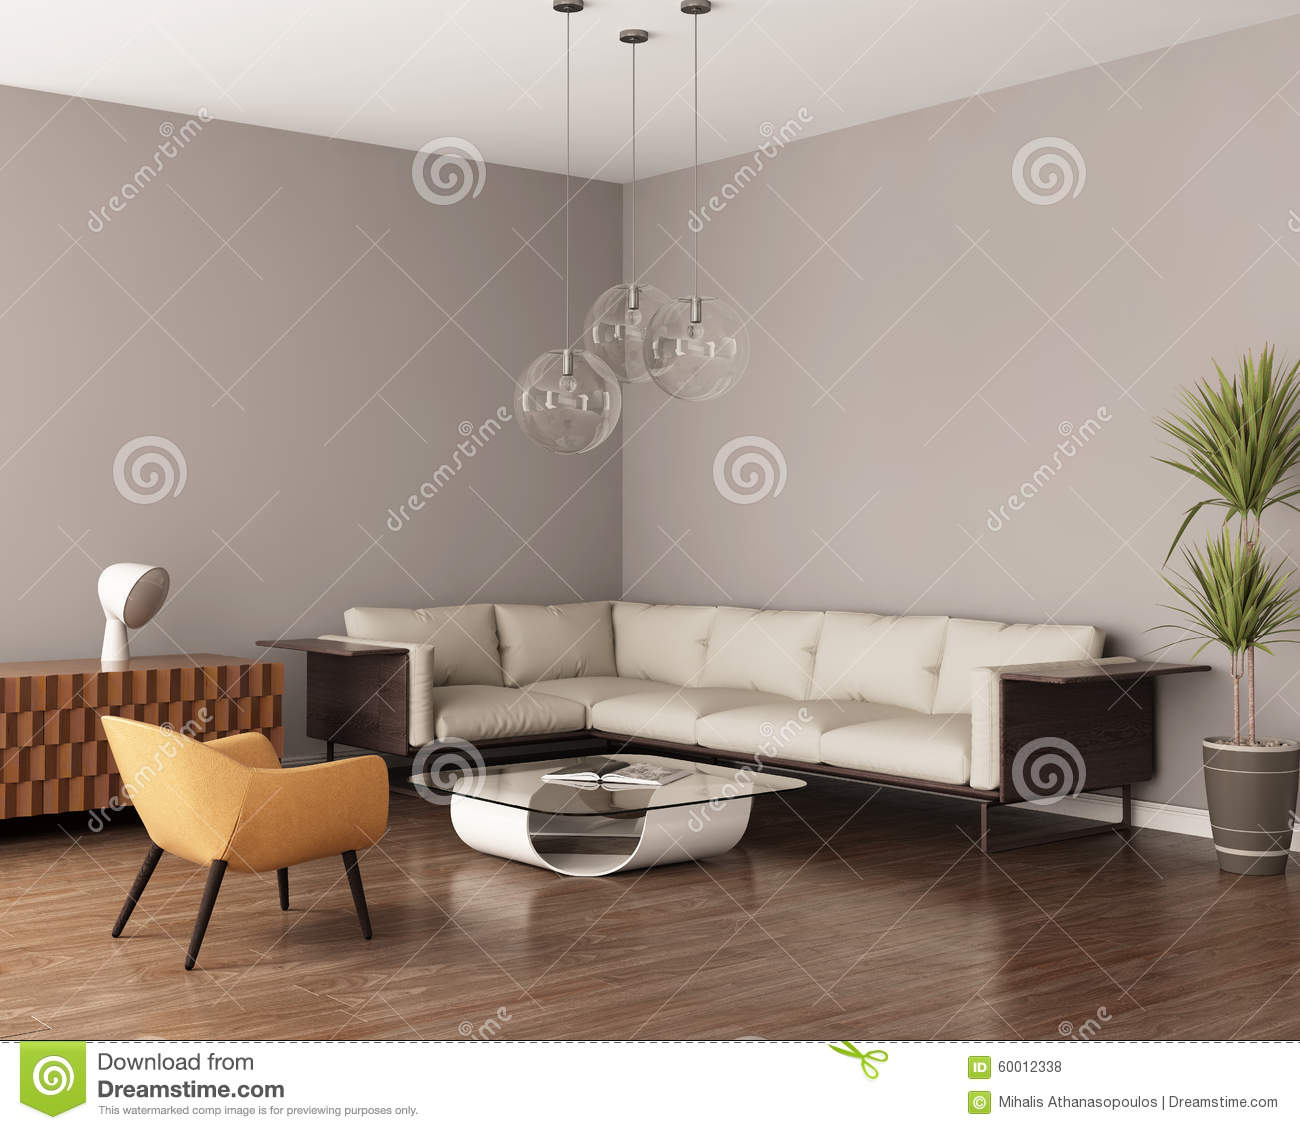 graues wohnzimmer mit einem ledernen sofa stockfoto bild 60012338. Black Bedroom Furniture Sets. Home Design Ideas